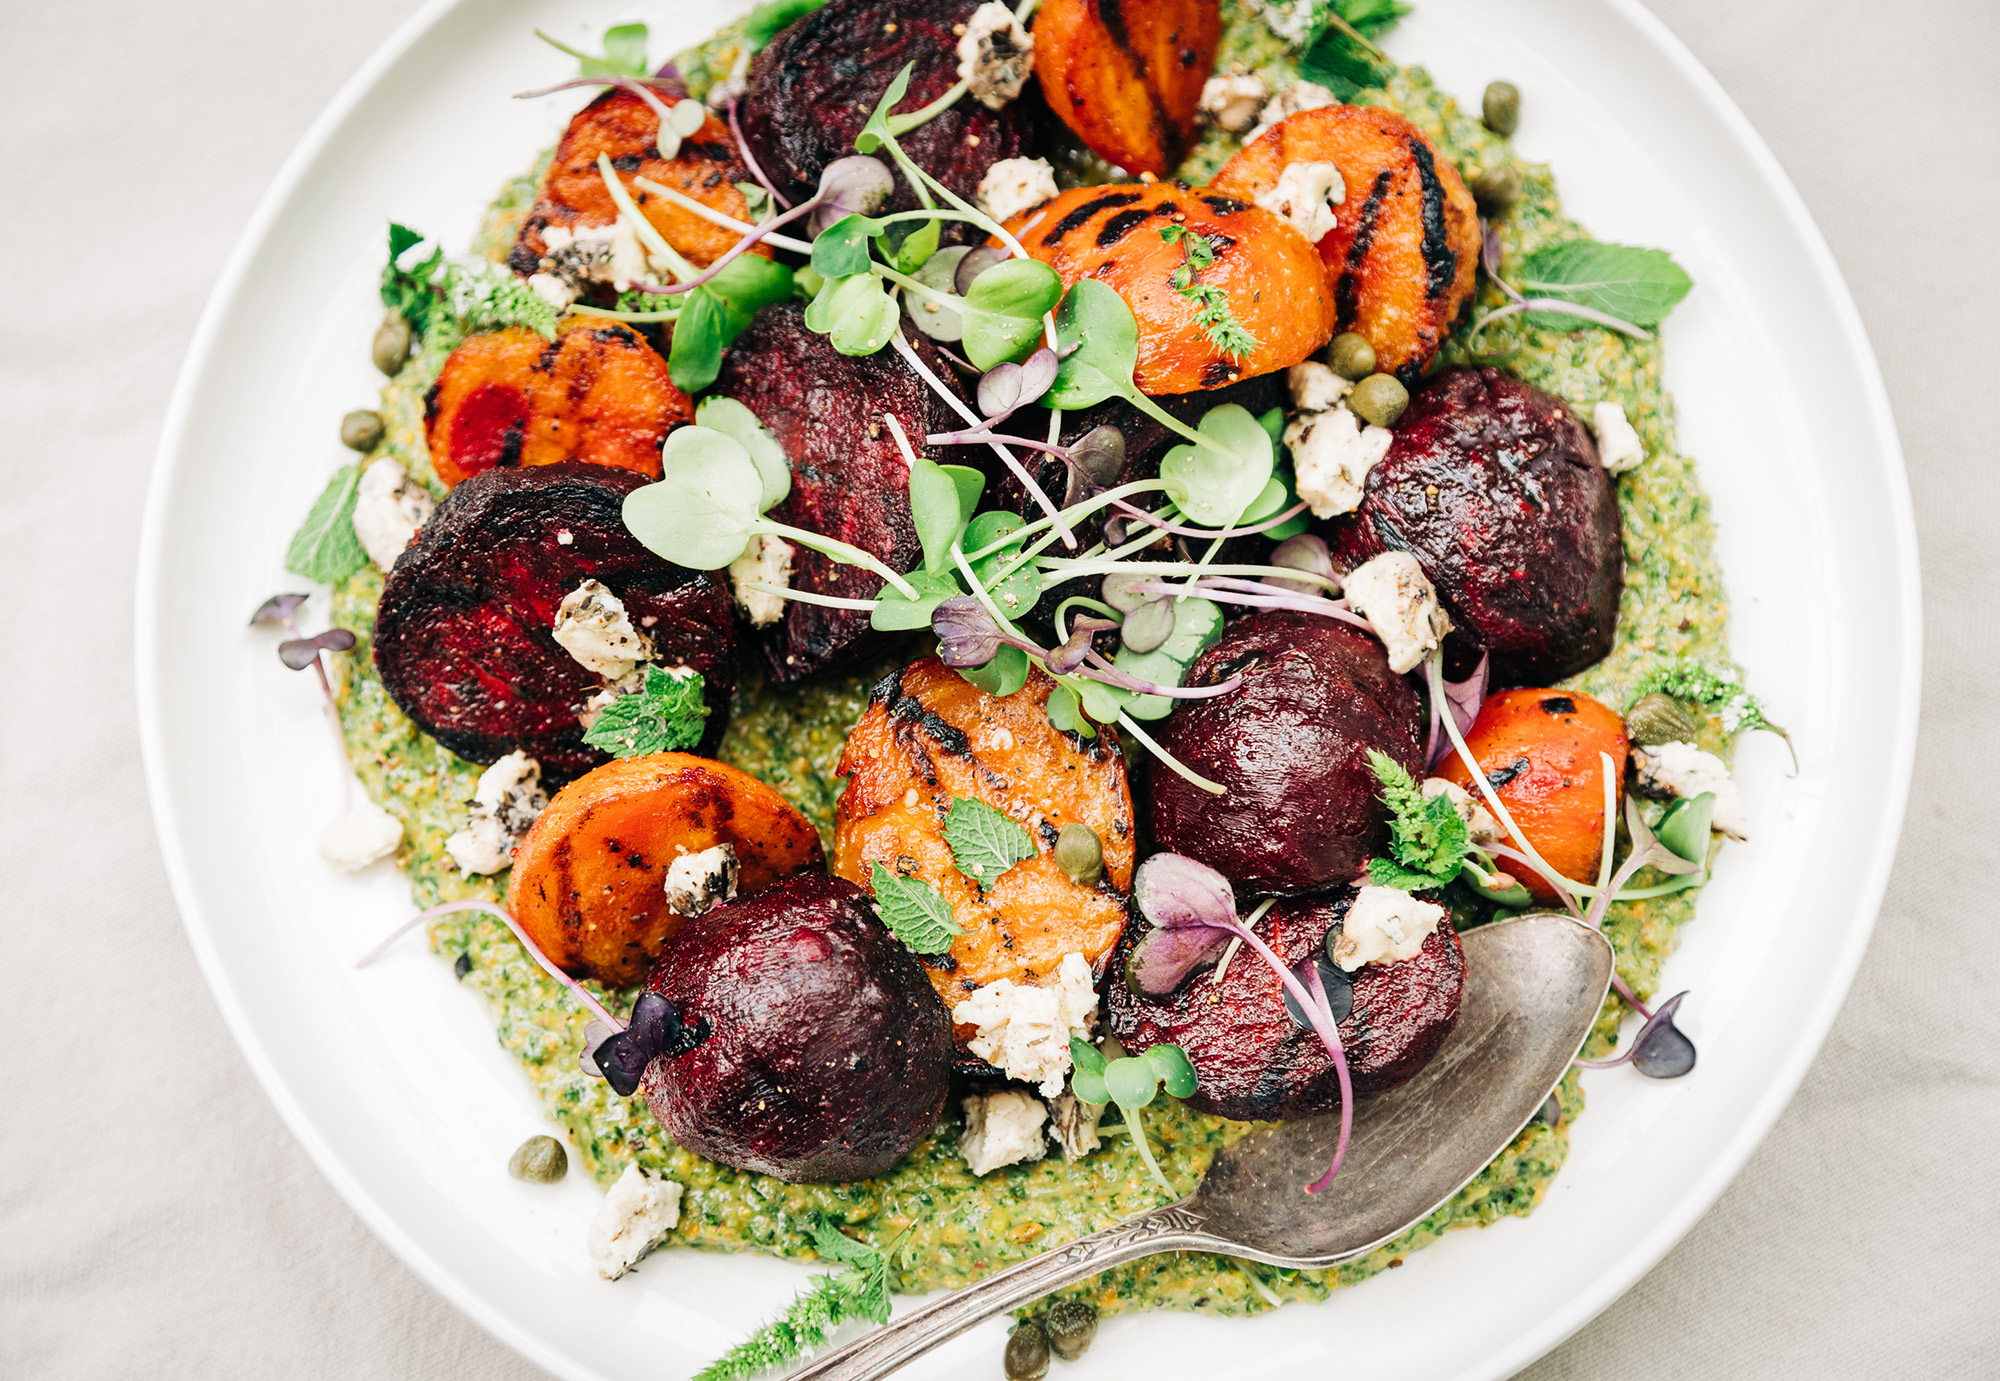 An overhead shot of some grilled beets on top of a textured green sauce on a white plate. The dish is garnished with purple and green radish micro greens and small bits of creamy white vegan cheese.